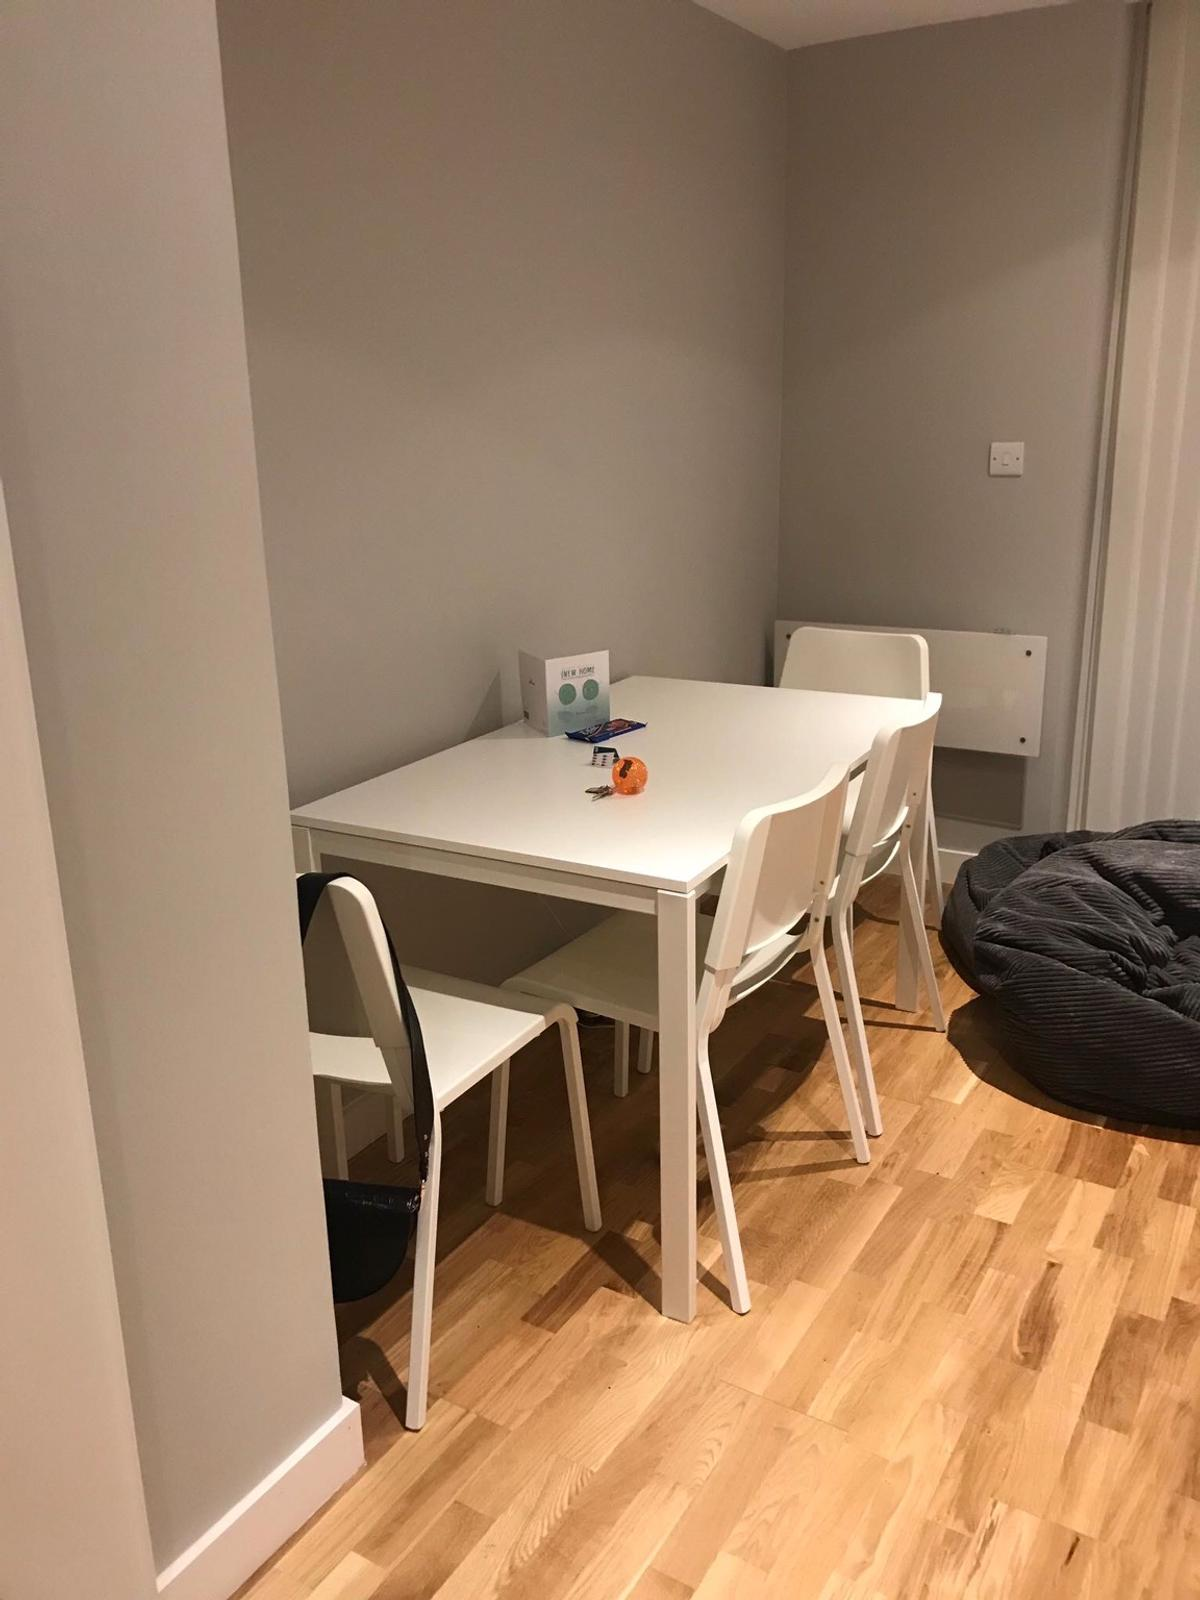 Picture of: Dining Set Ikea In W7 Ealing For 65 00 For Sale Shpock